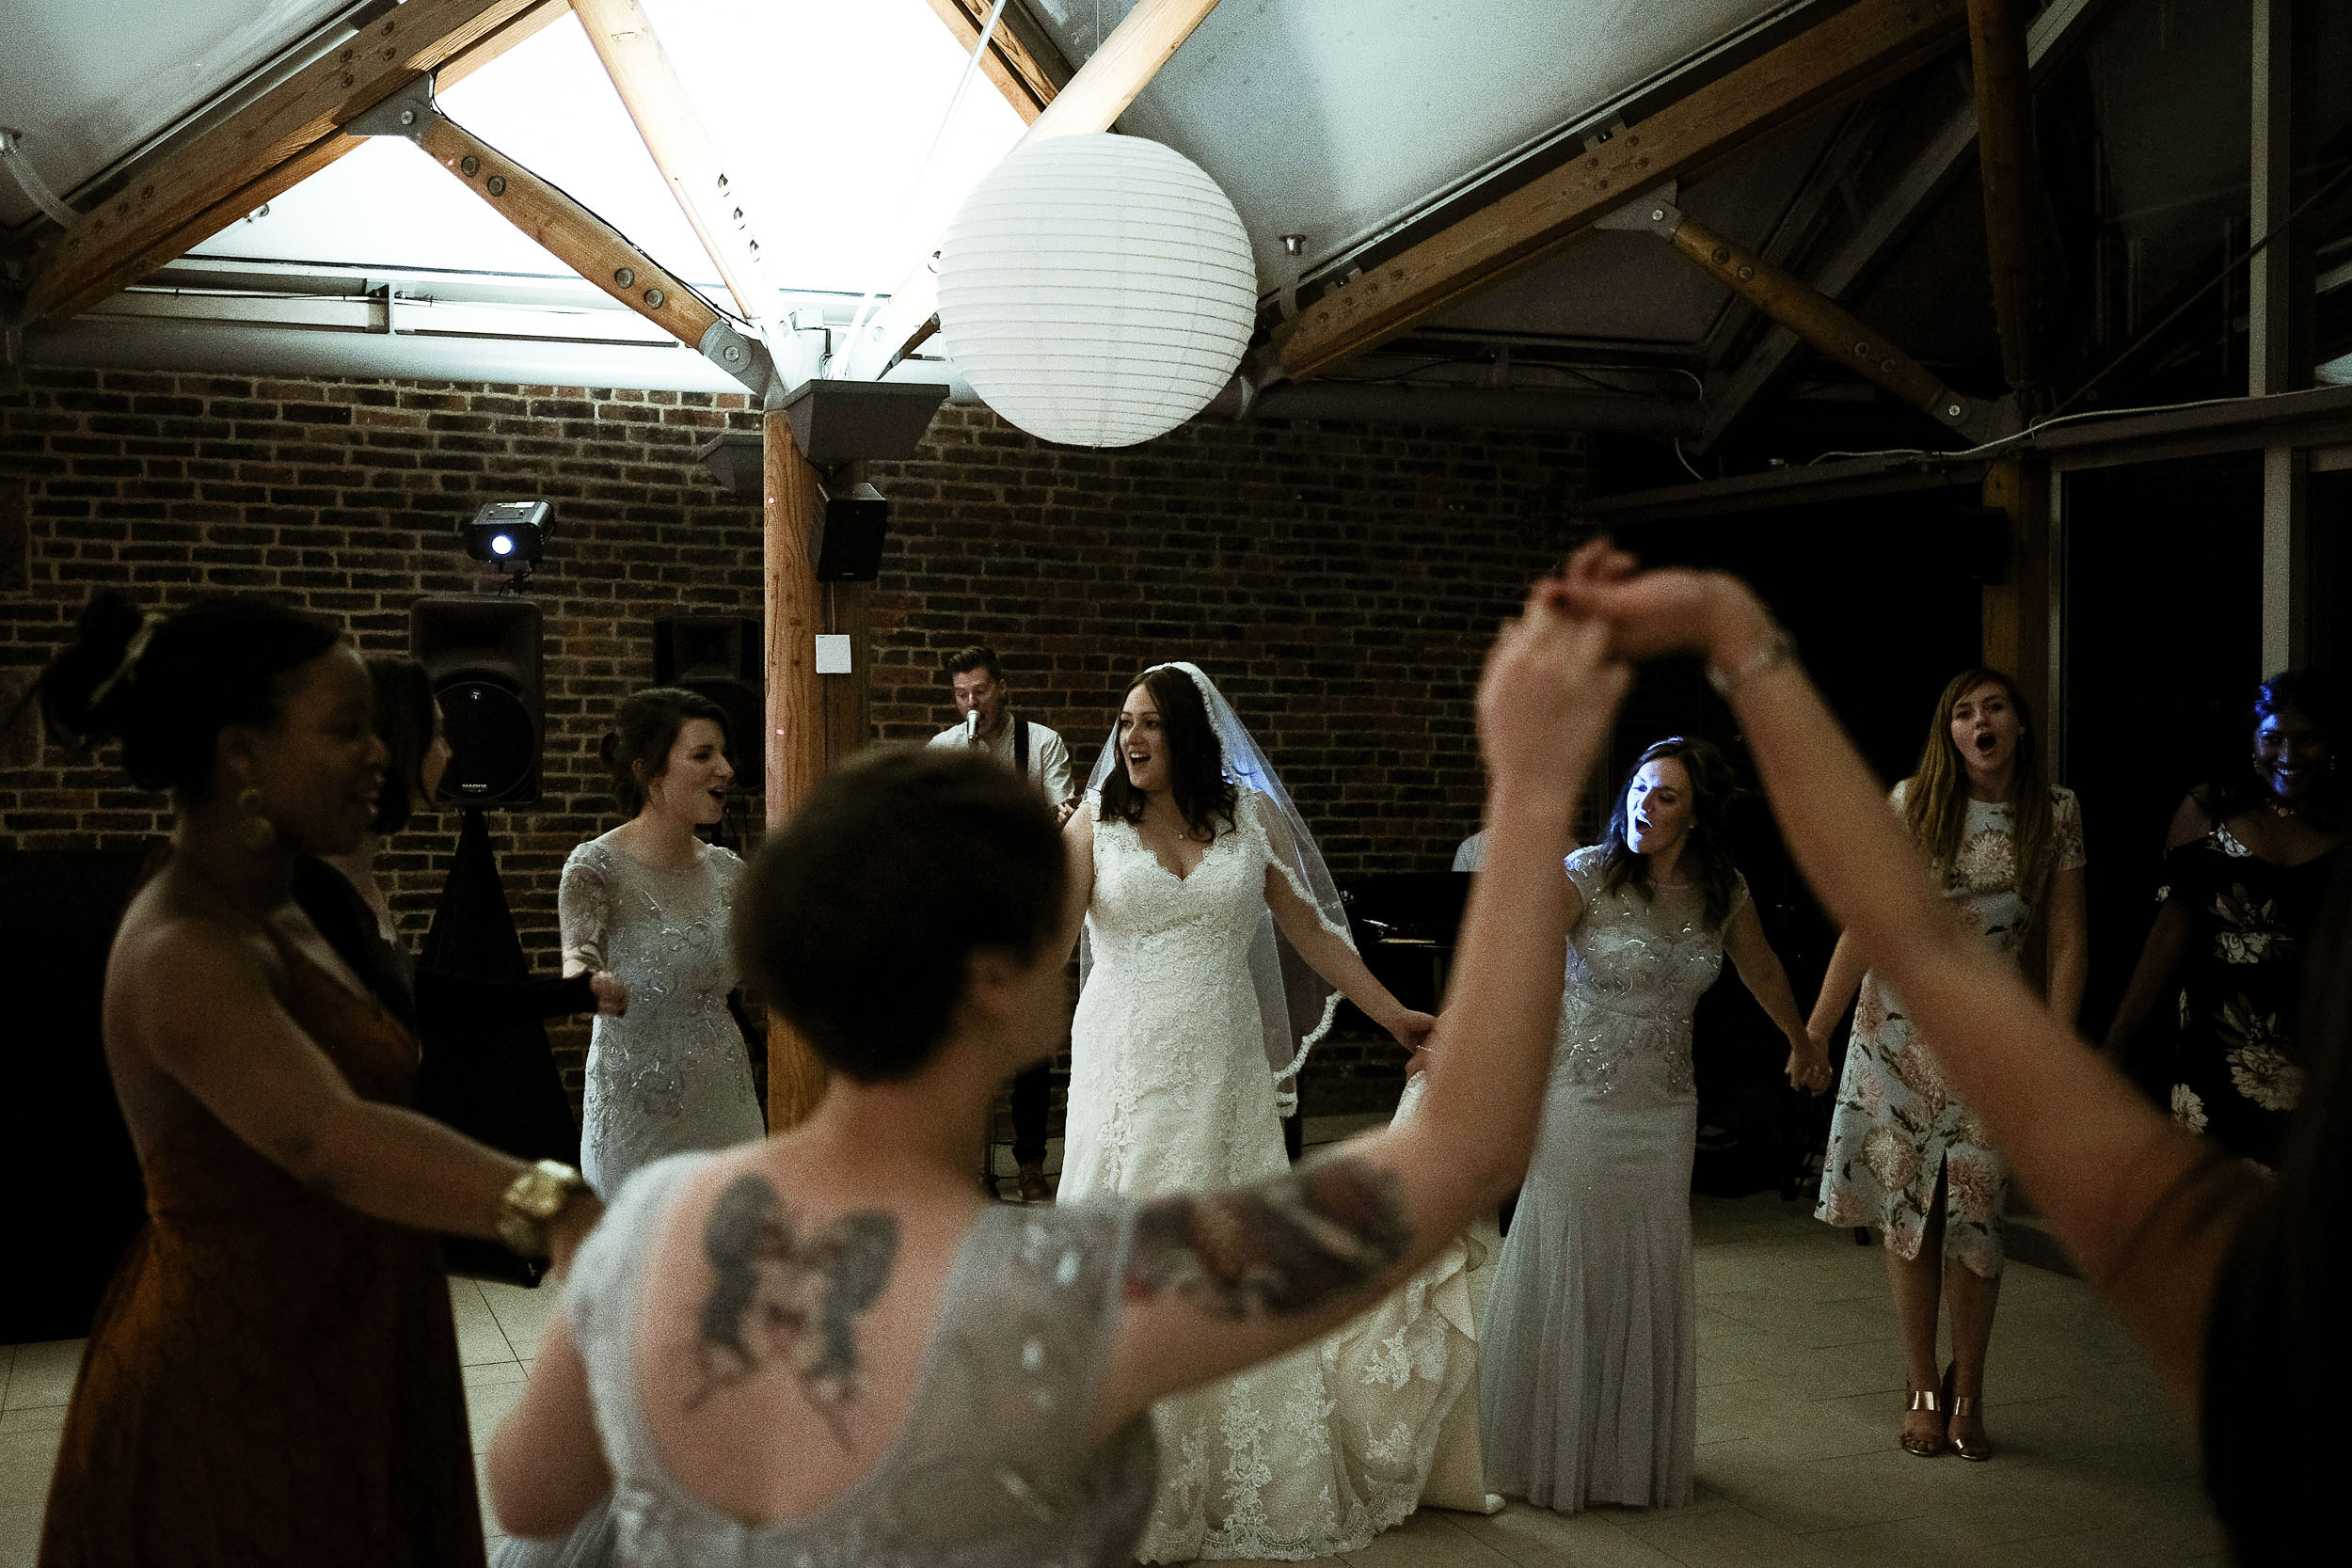 Bride and bridesmaids dance as the band plays